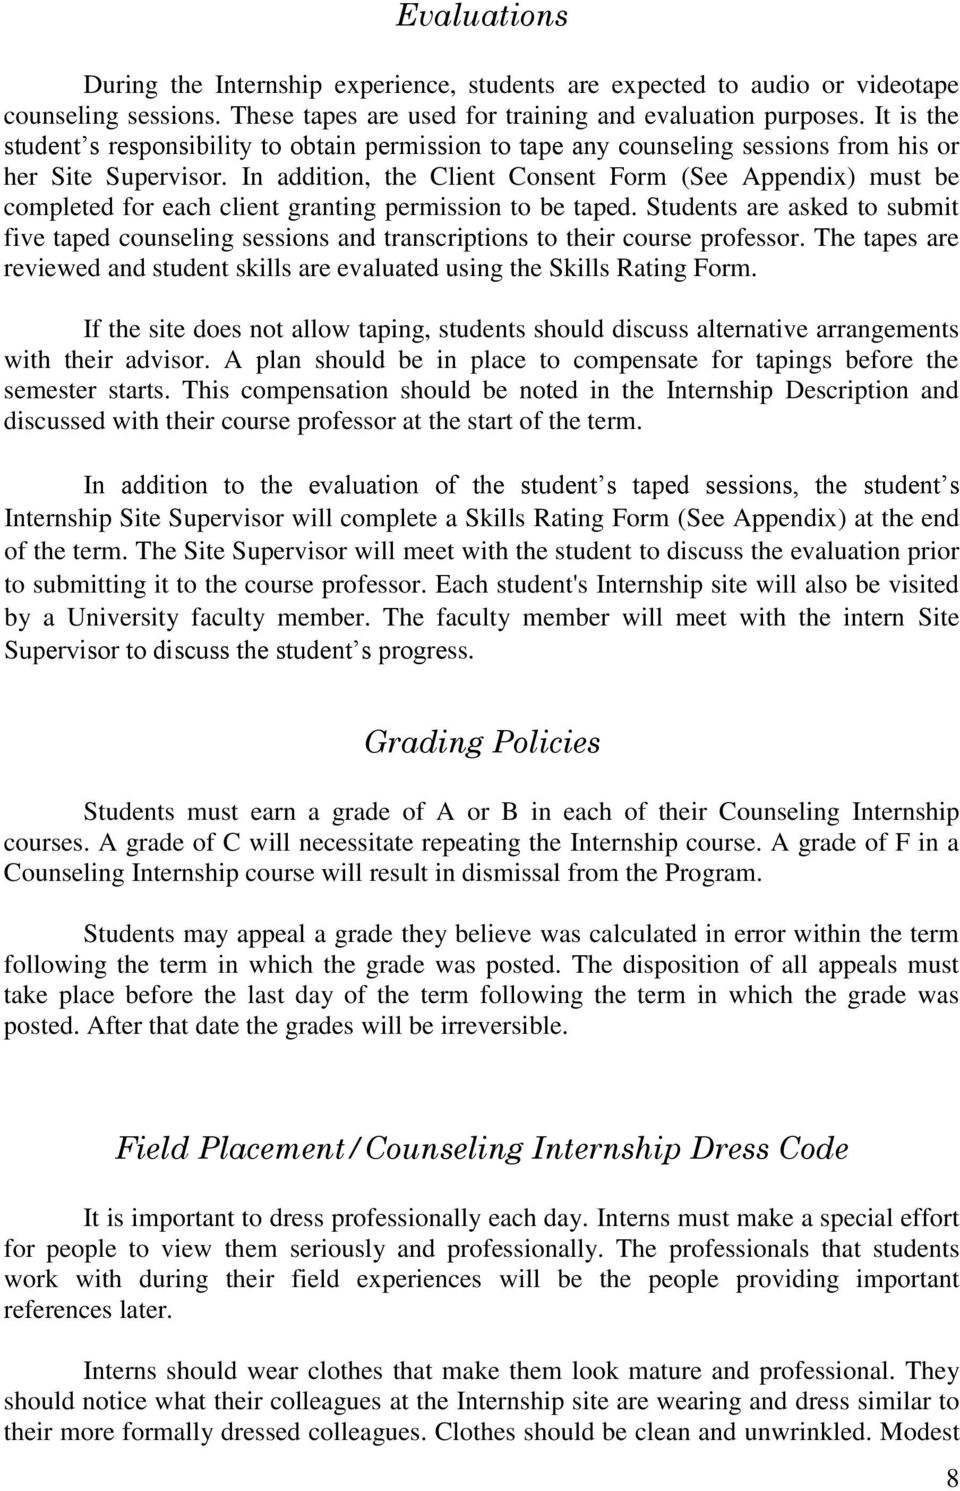 professor dating student policy